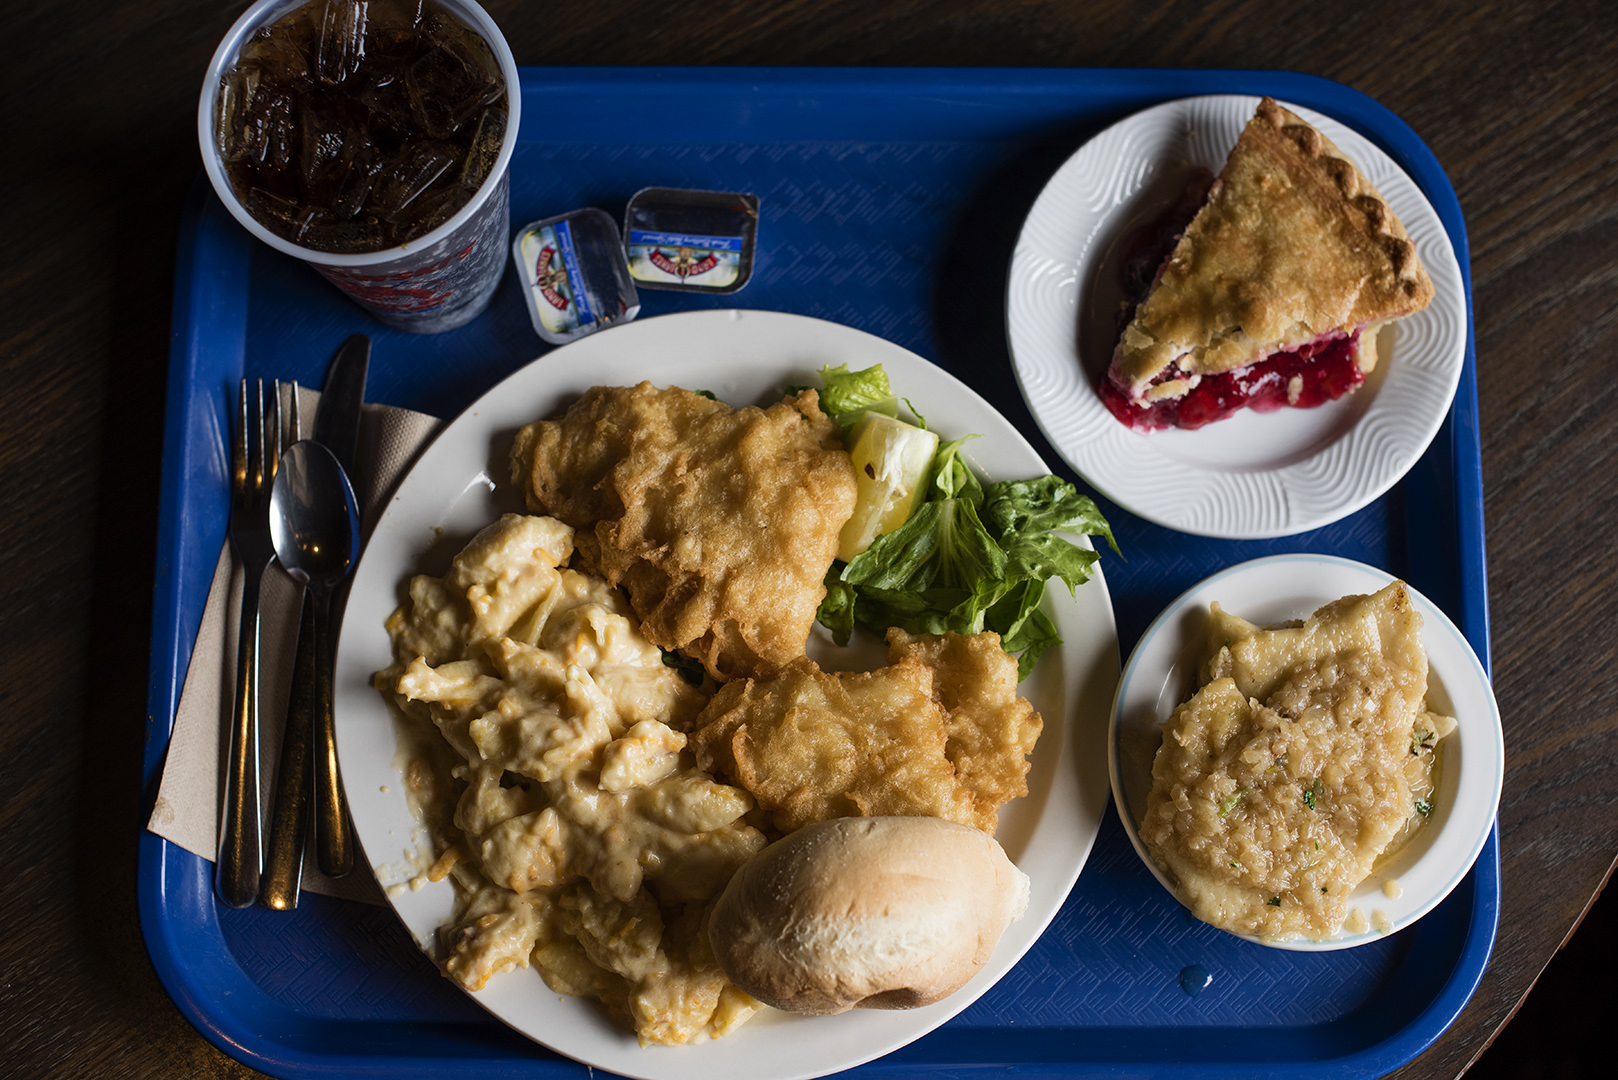 Fresh fried cod served with macoroni and cheese, a dinner roll, pierogies and a slice of cherry pie for dessert. (Dustin Franz/The Washington Post)